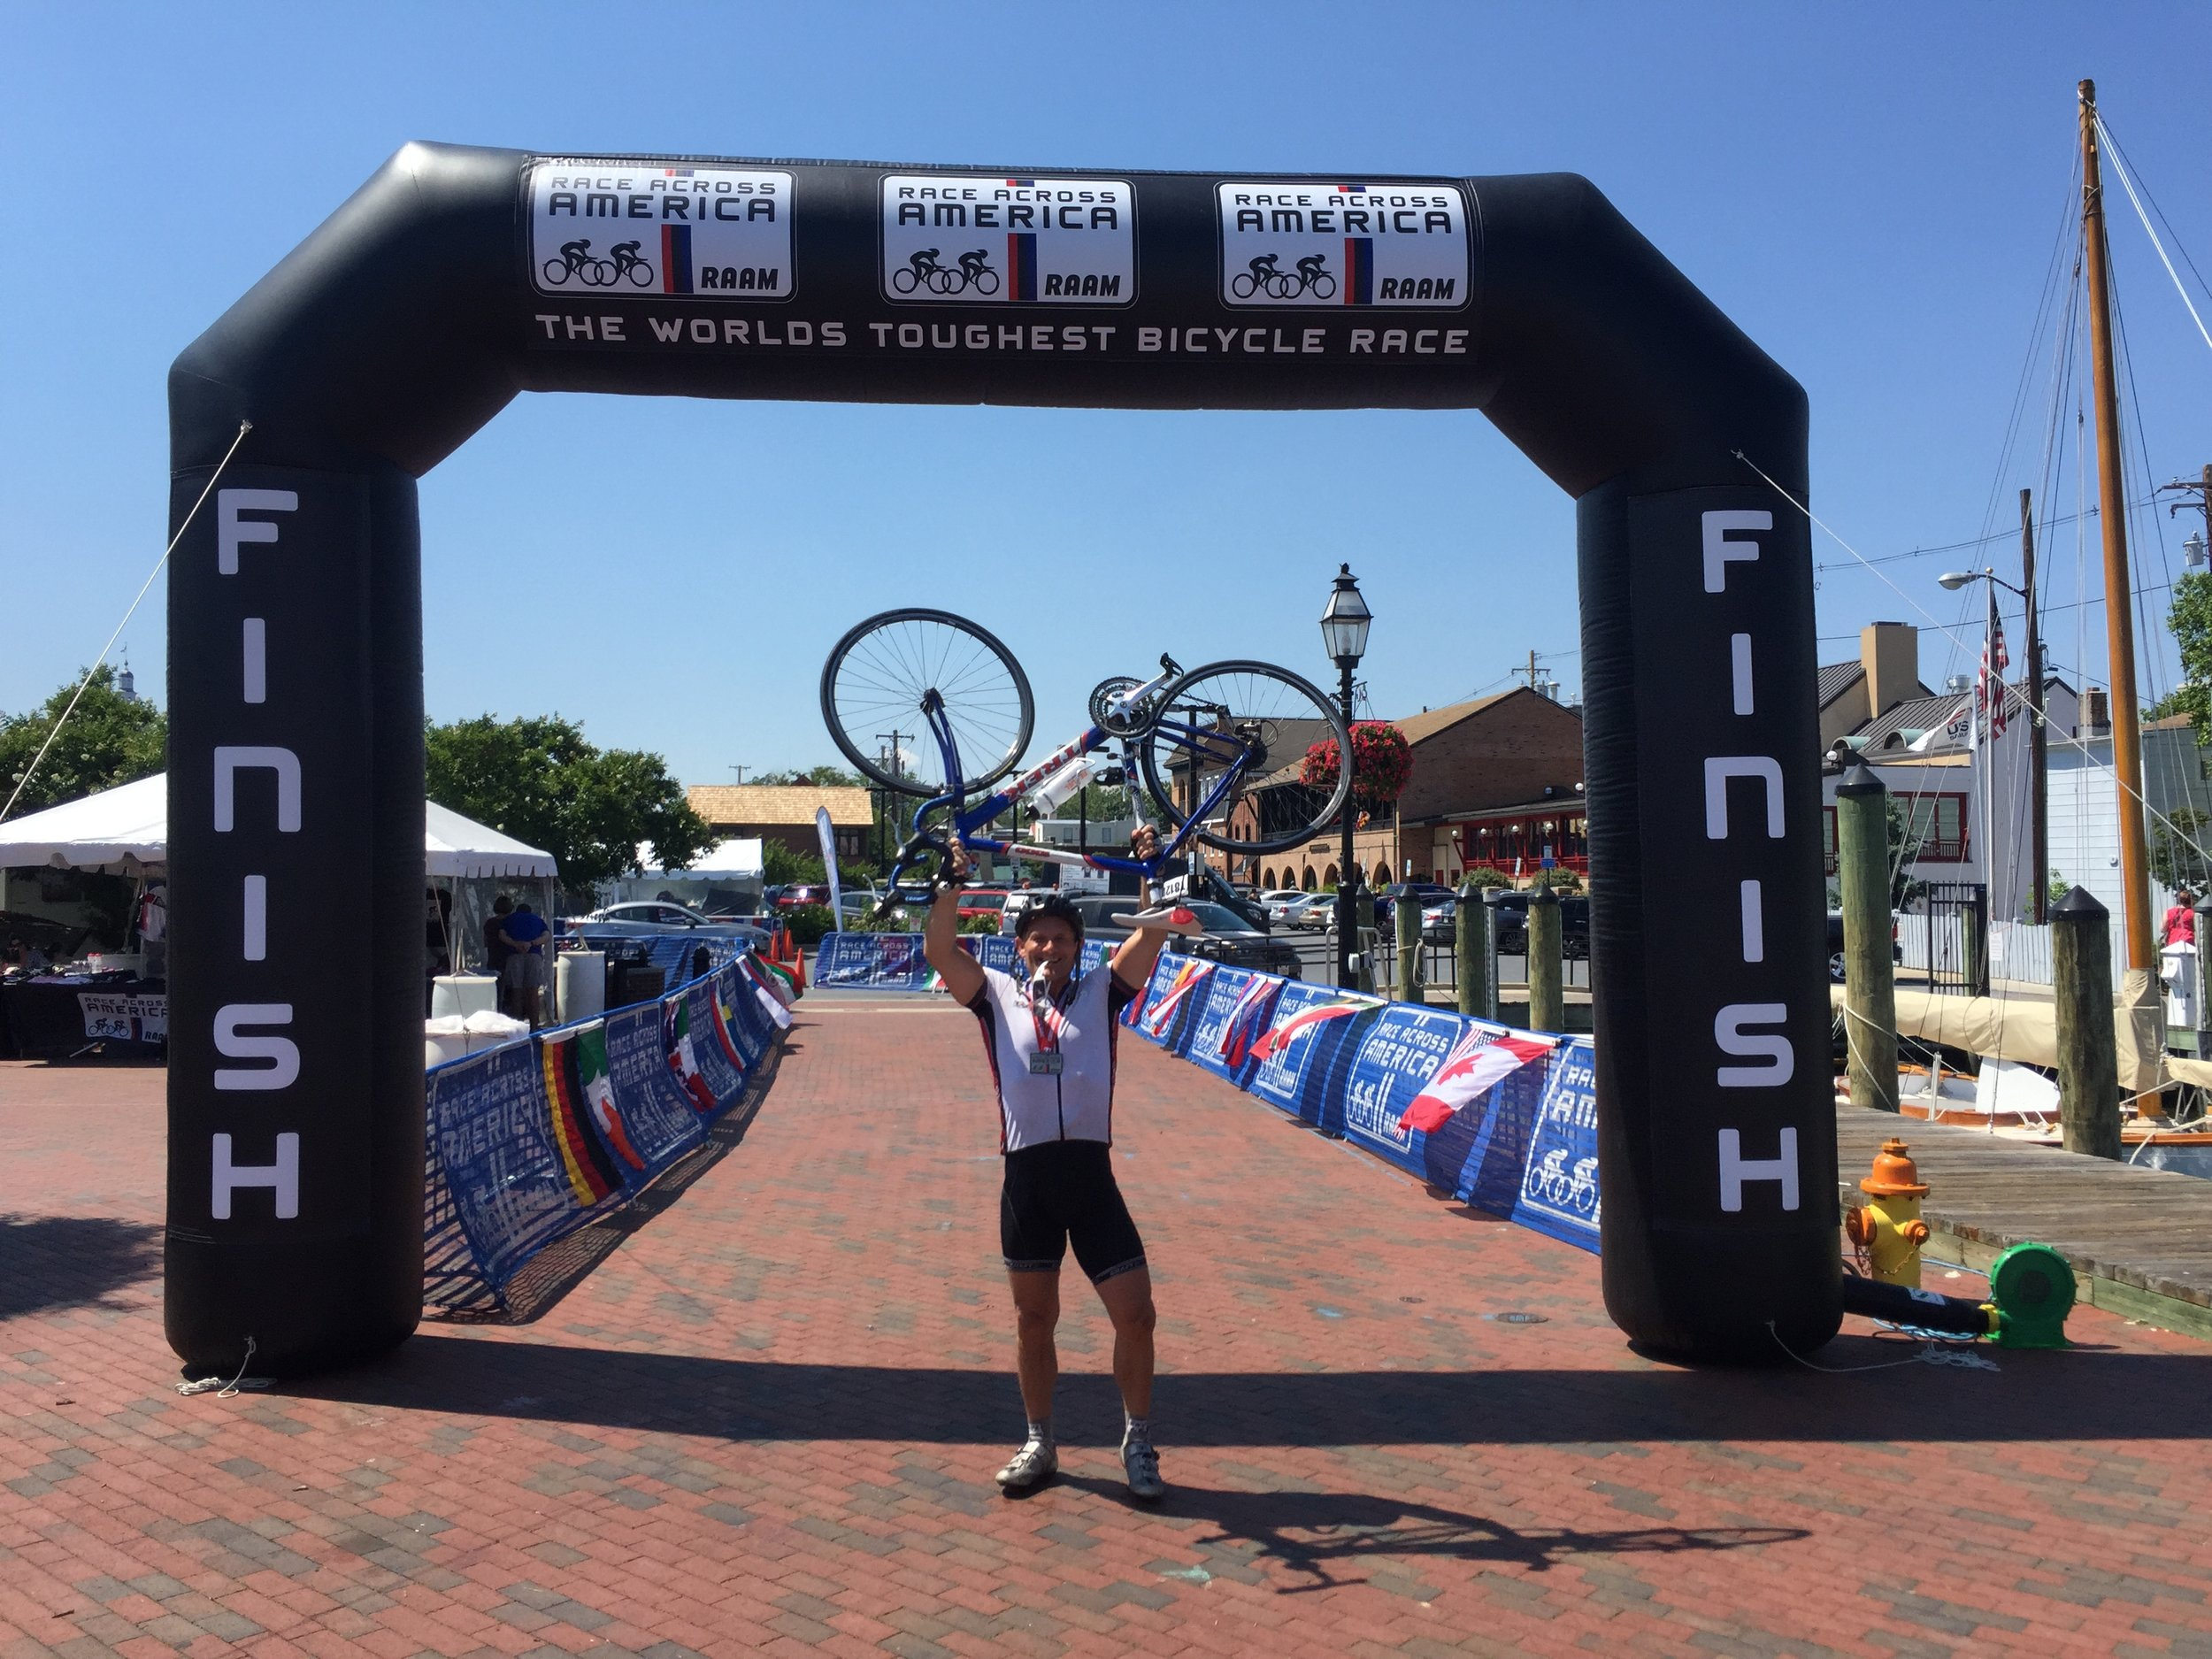 8-man team rider Peter at the finish line in Annapolis, MA